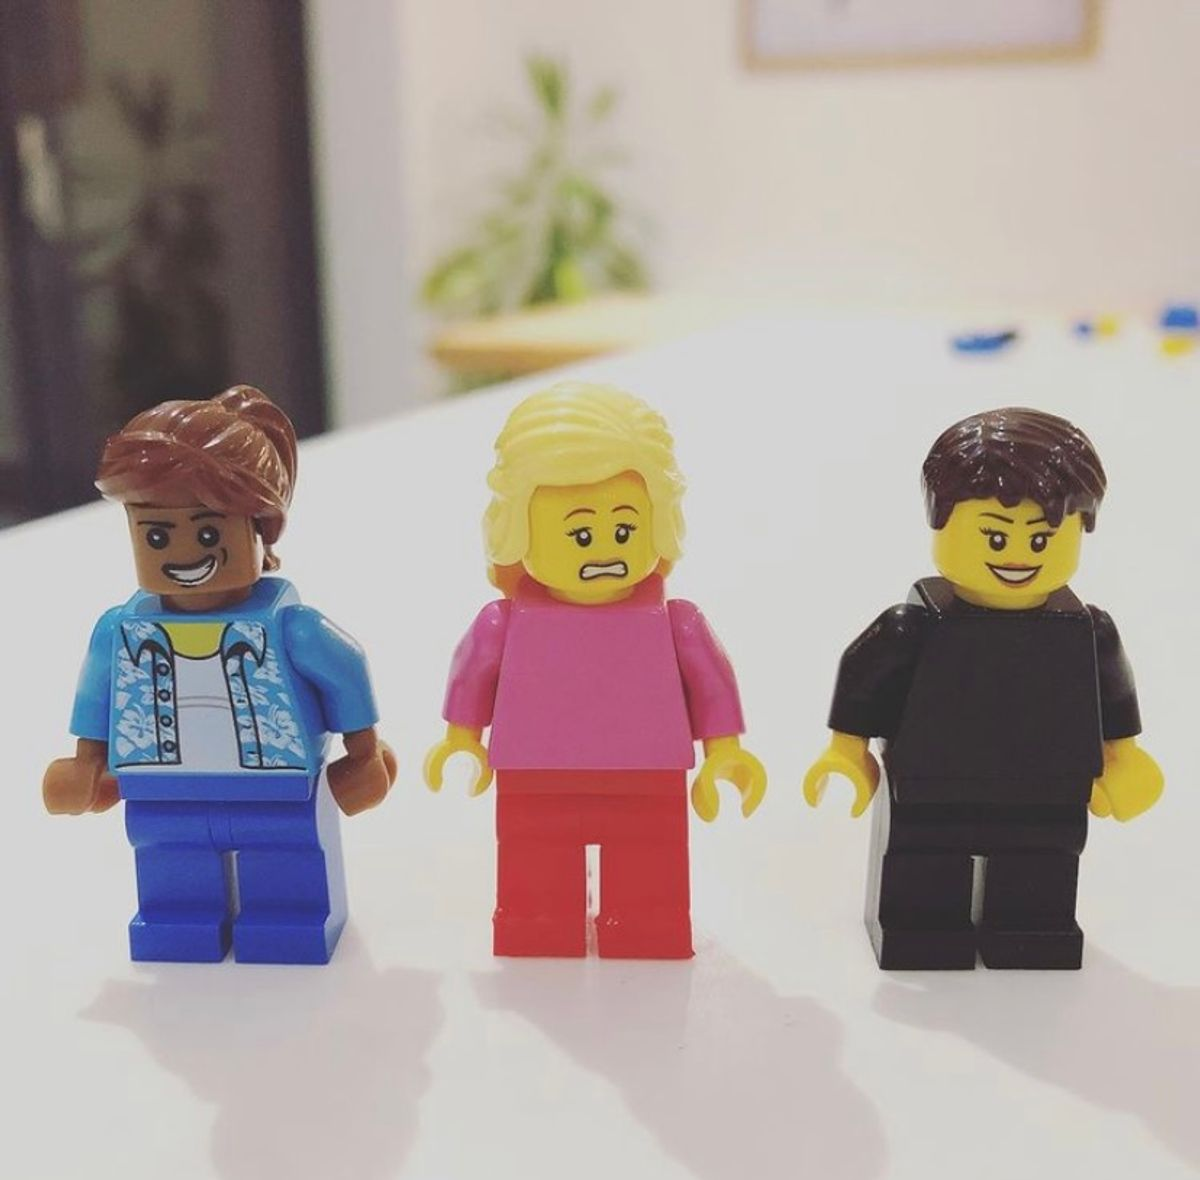 Three lego characters - one is looking worried